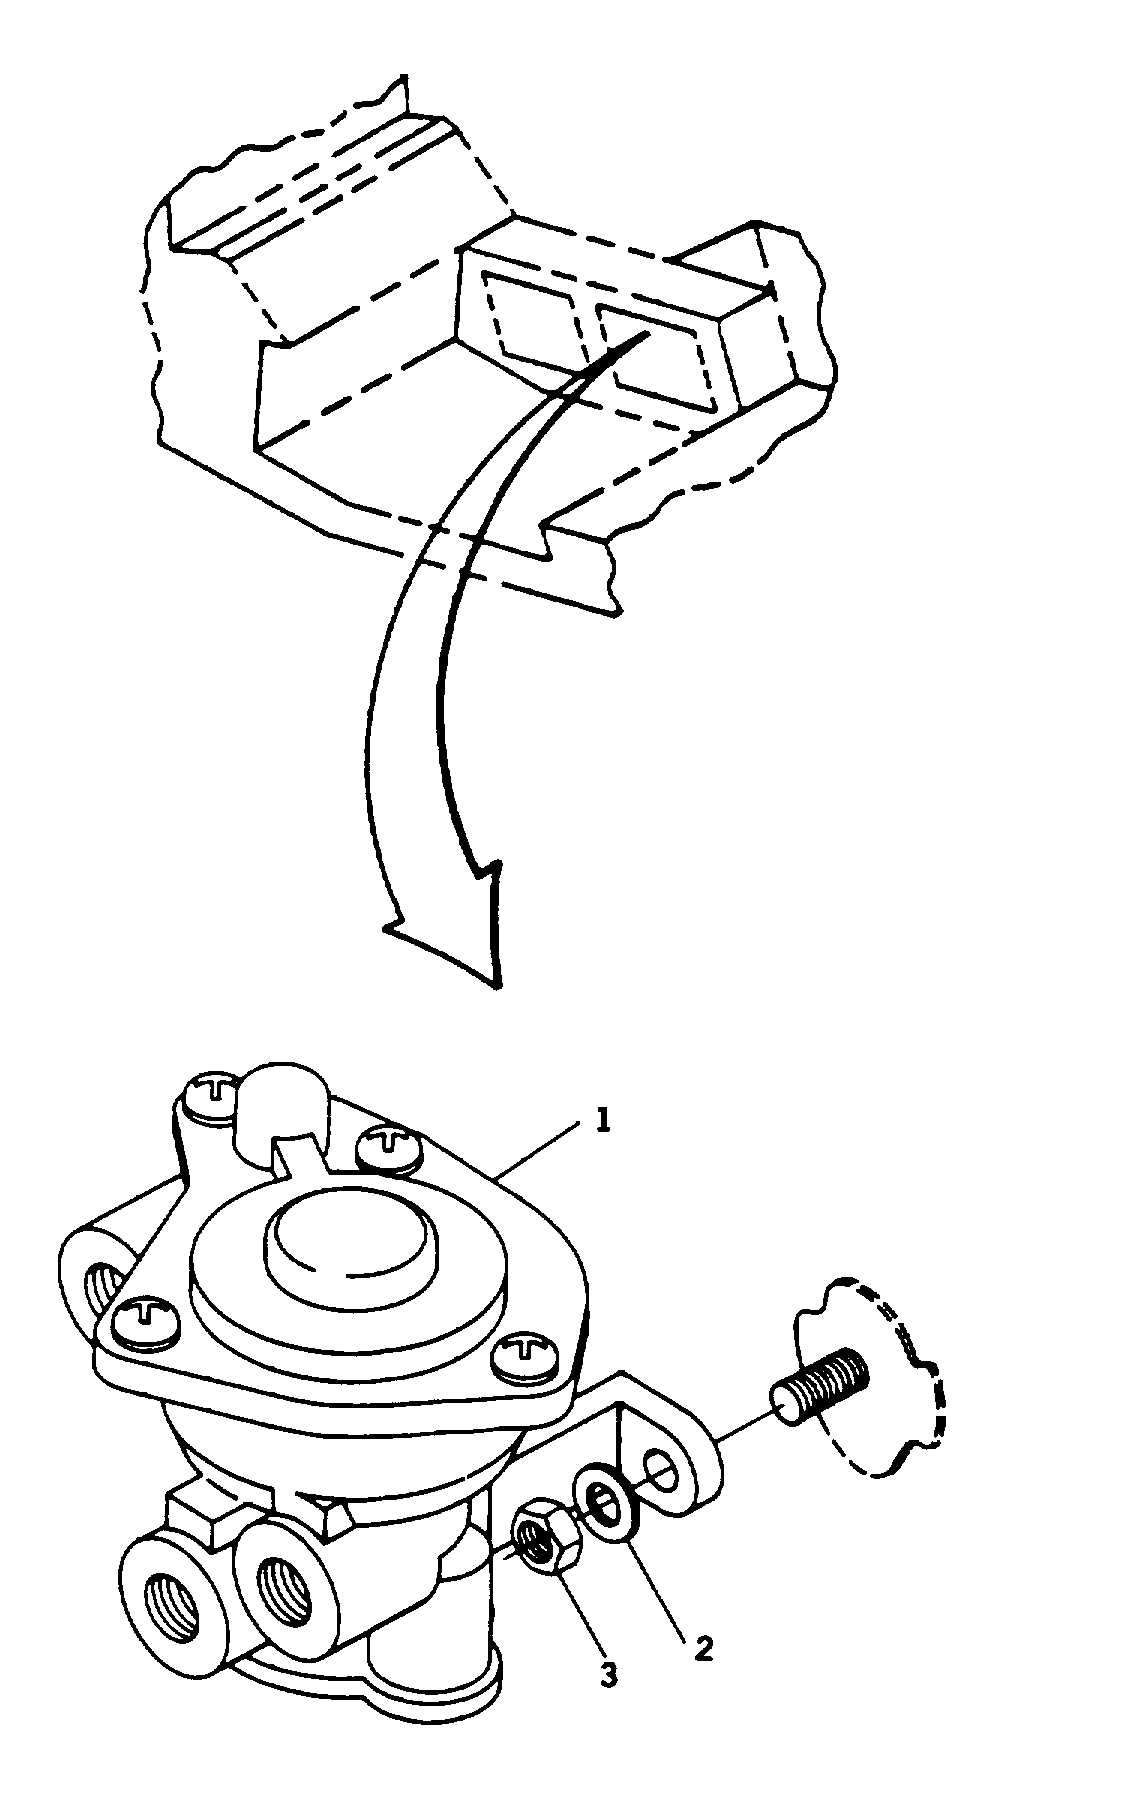 1971 plymouth satellite engine wiring diagram as well 97 chevy engine diagram 3 1 liter additionally